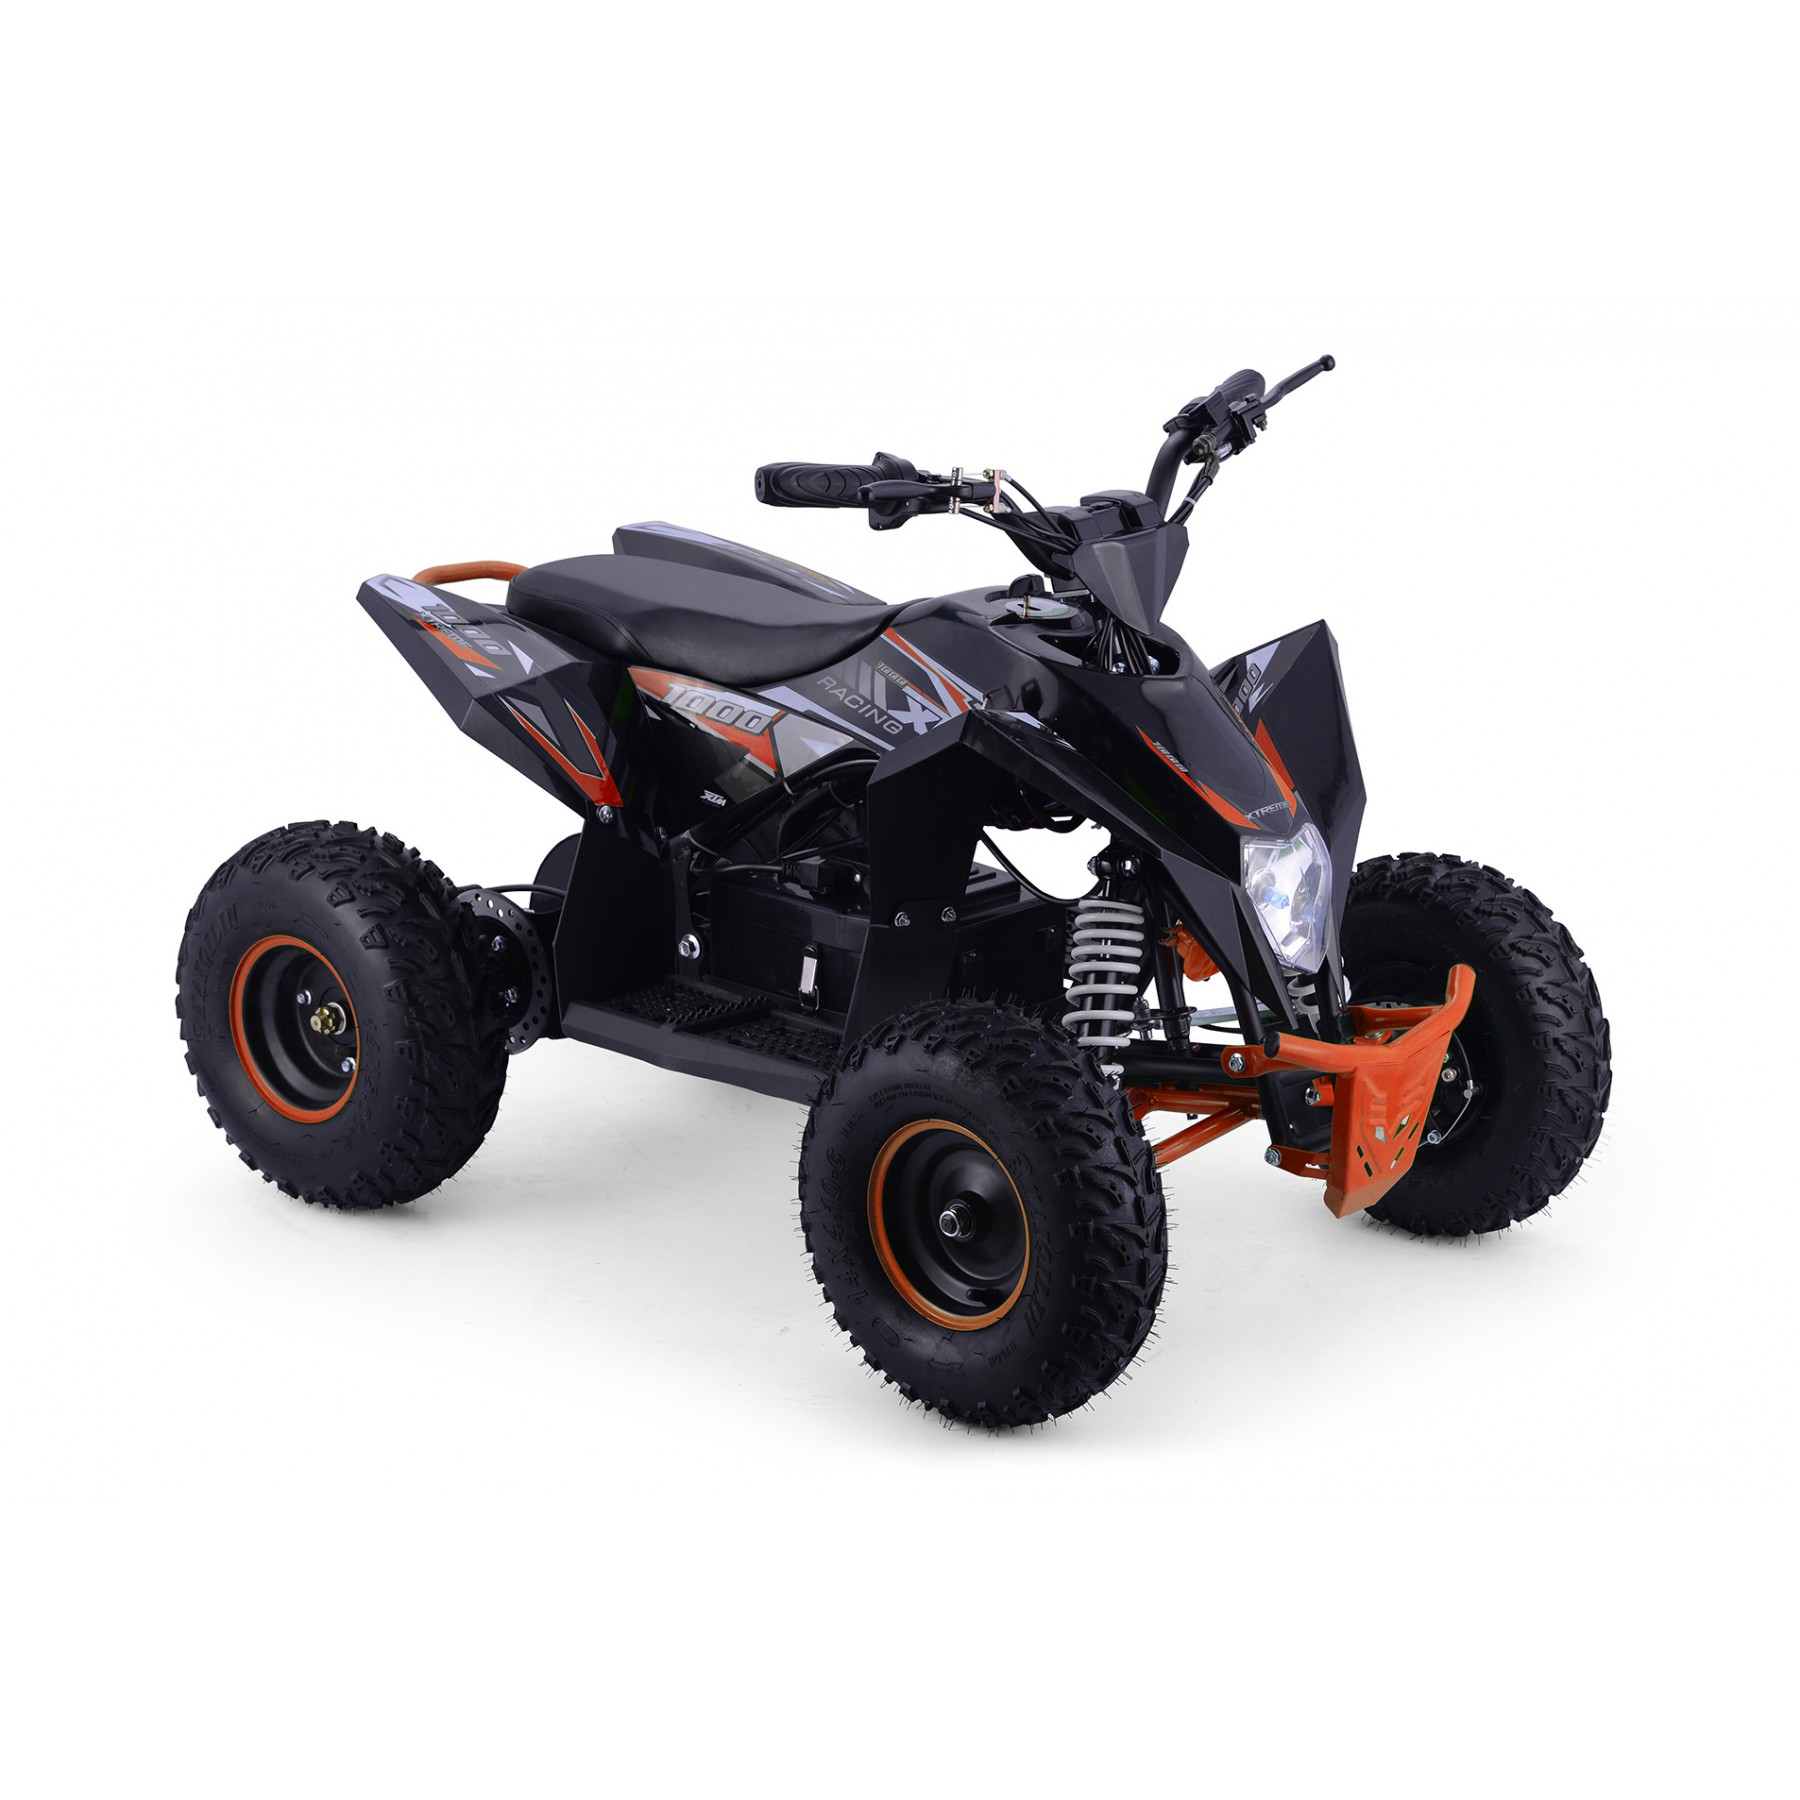 XTM RACING 1000w QUAD BIKE BLACK ORANGE